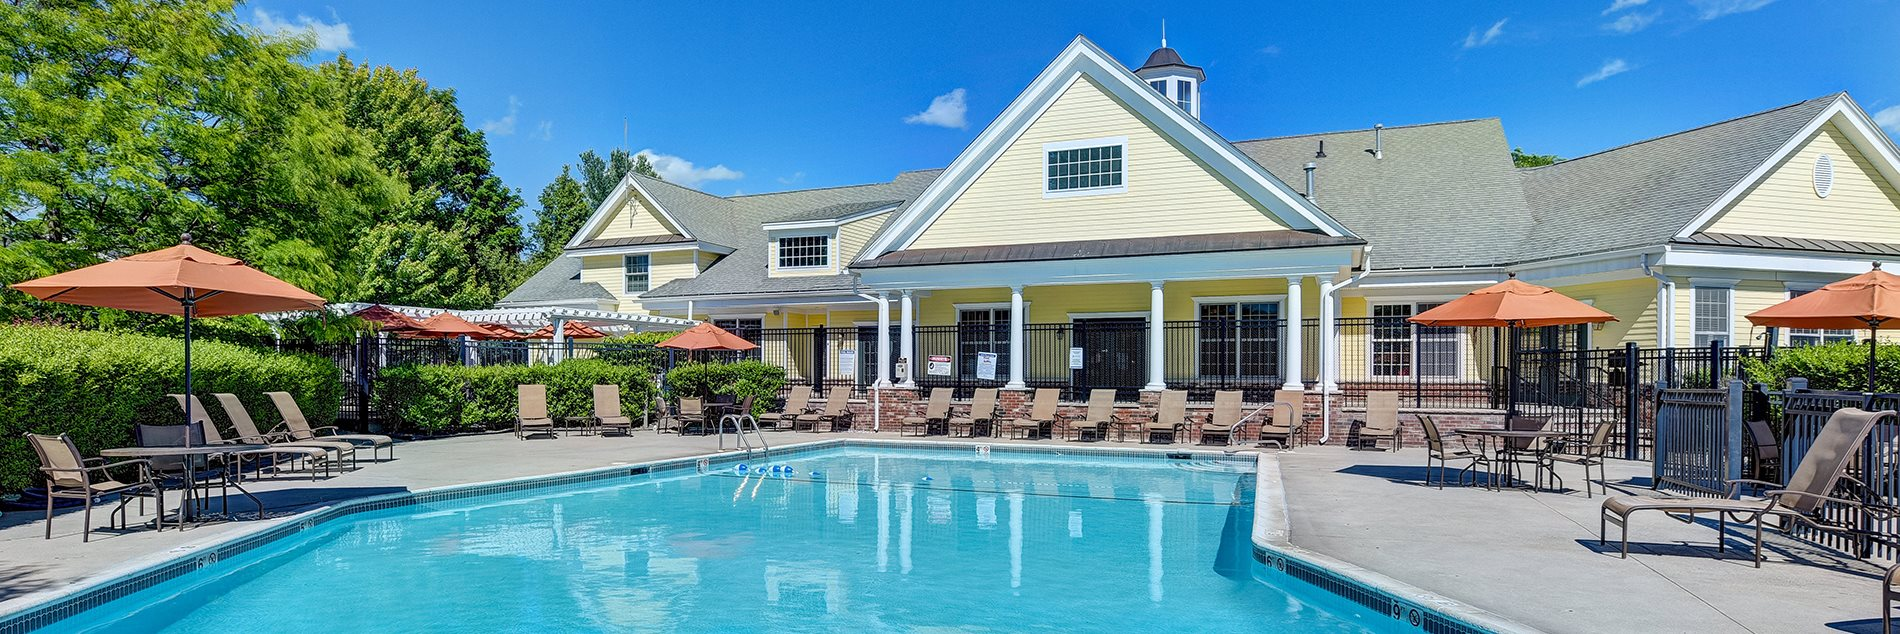 Resort-Style Pool at Windsor Ridge at Westborough, 1 Windsor Ridge Drive, Westborough, MA 1581